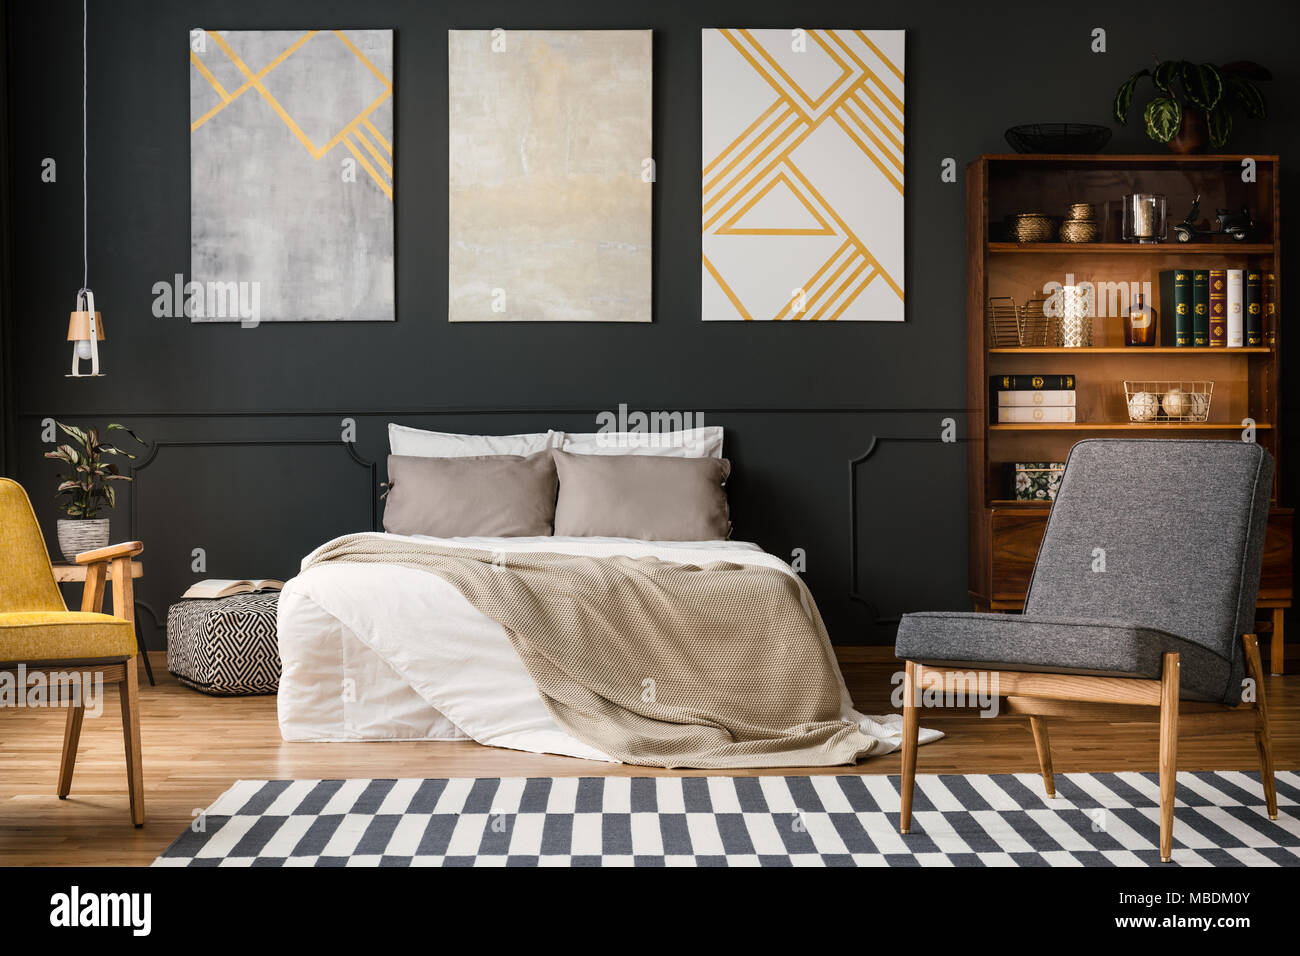 Astounding Modern Bedroom Interior With Big Bed Grey And White Carpet Caraccident5 Cool Chair Designs And Ideas Caraccident5Info